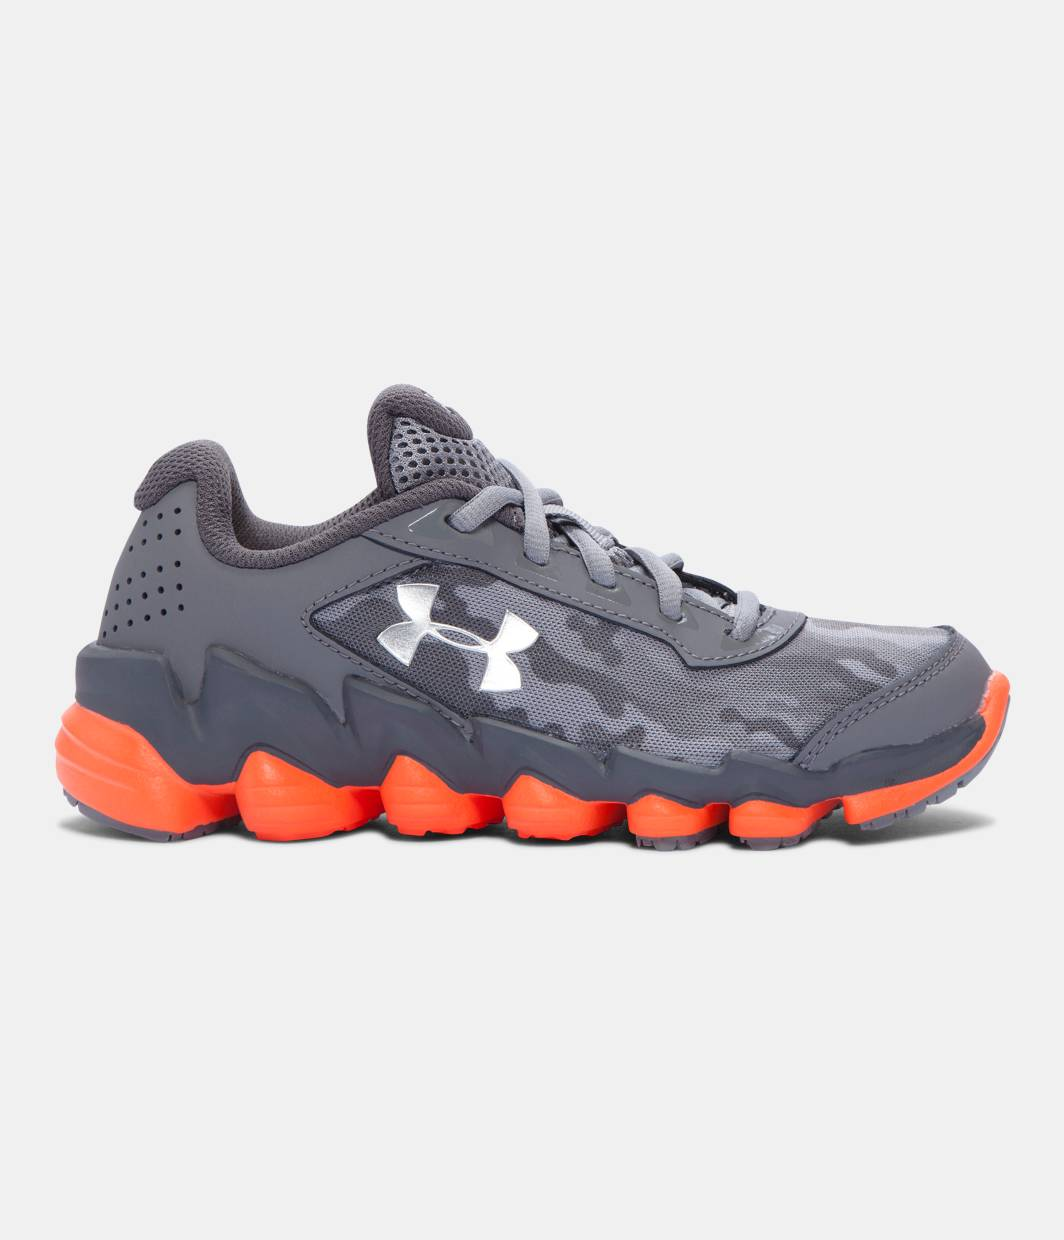 Under Armour Spine Shoes For Sale